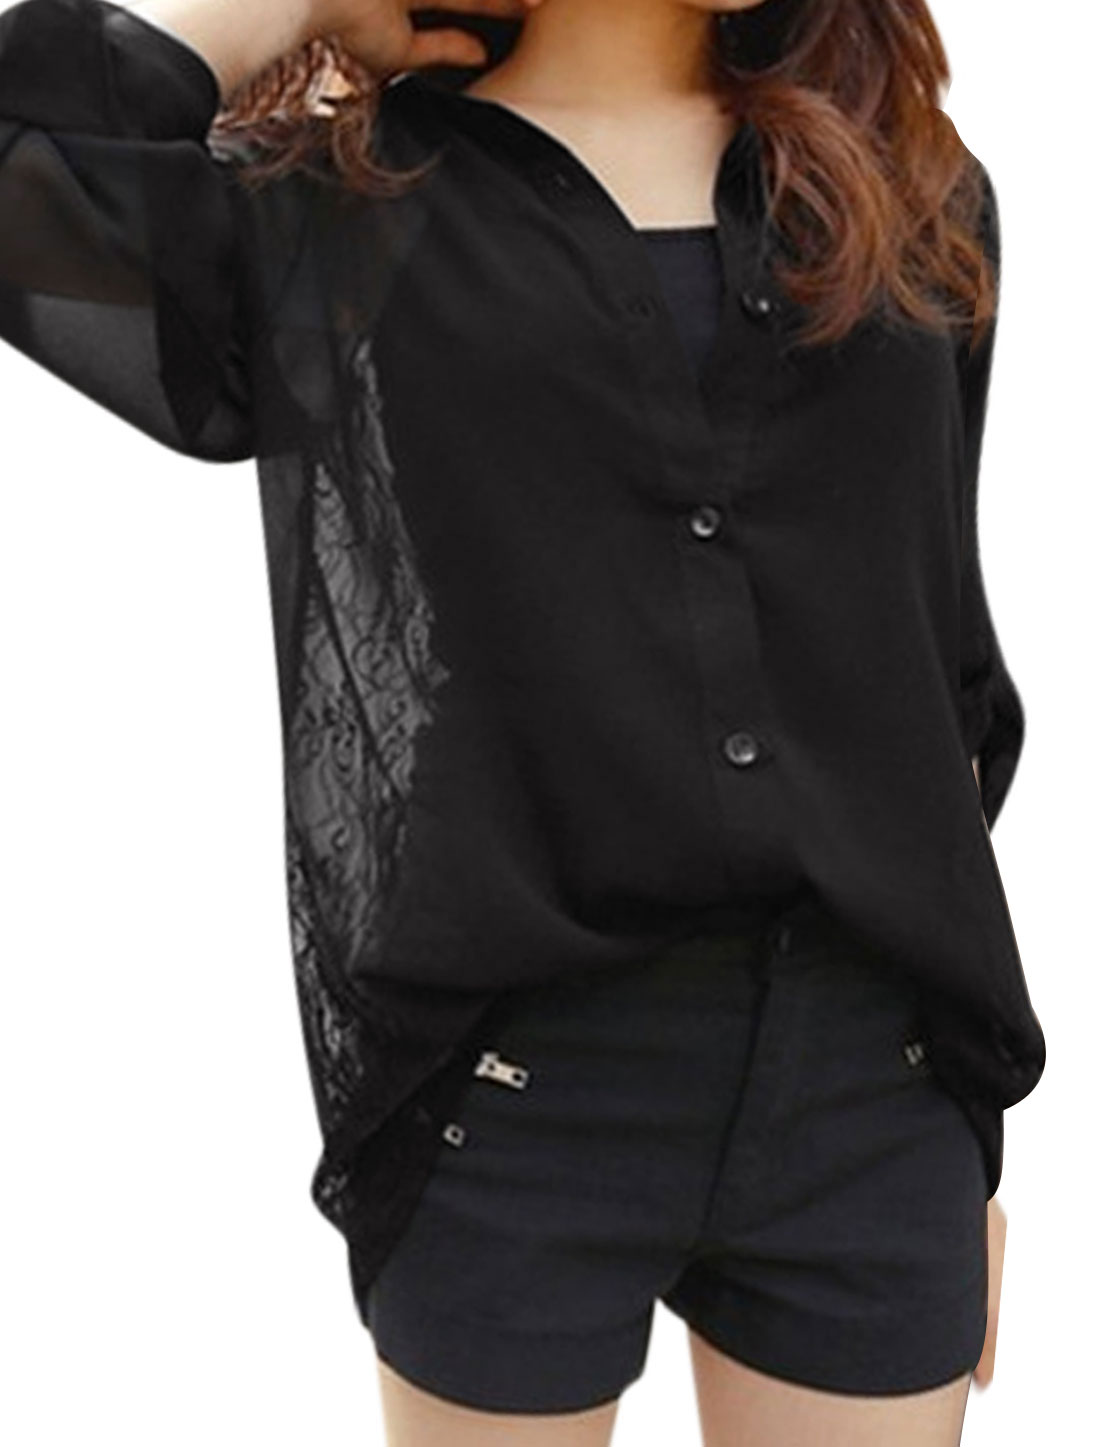 Woman Roll Up Sleeves Lace Panel Semi Sheer Chiffon Tunic Shirt Black S